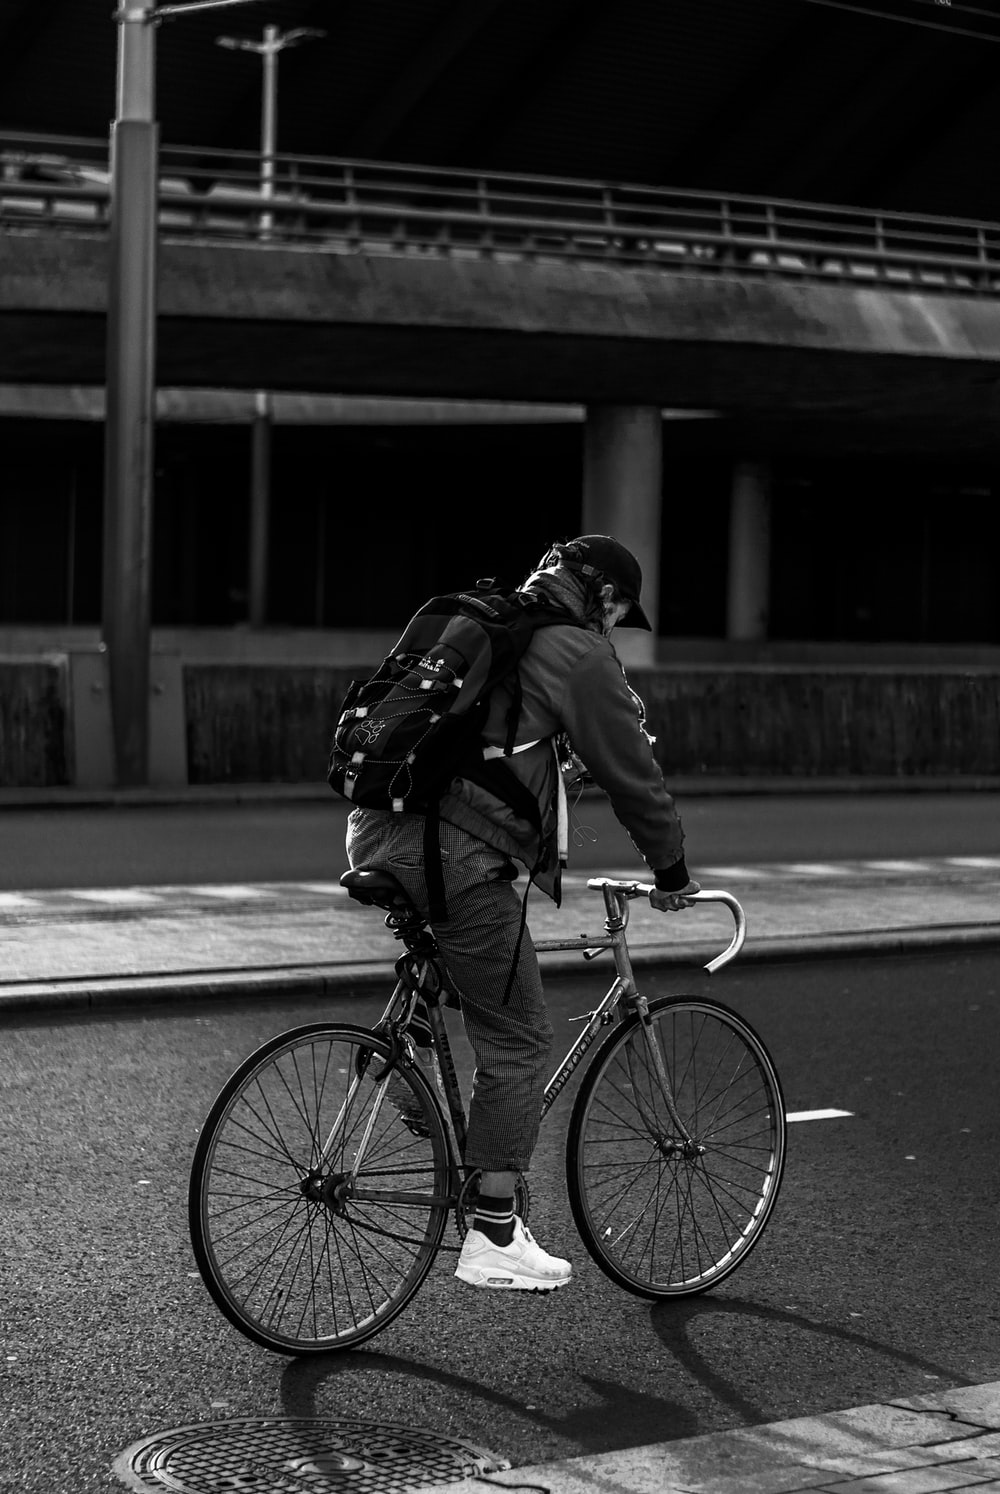 man in black jacket and pants riding bicycle on road during daytime